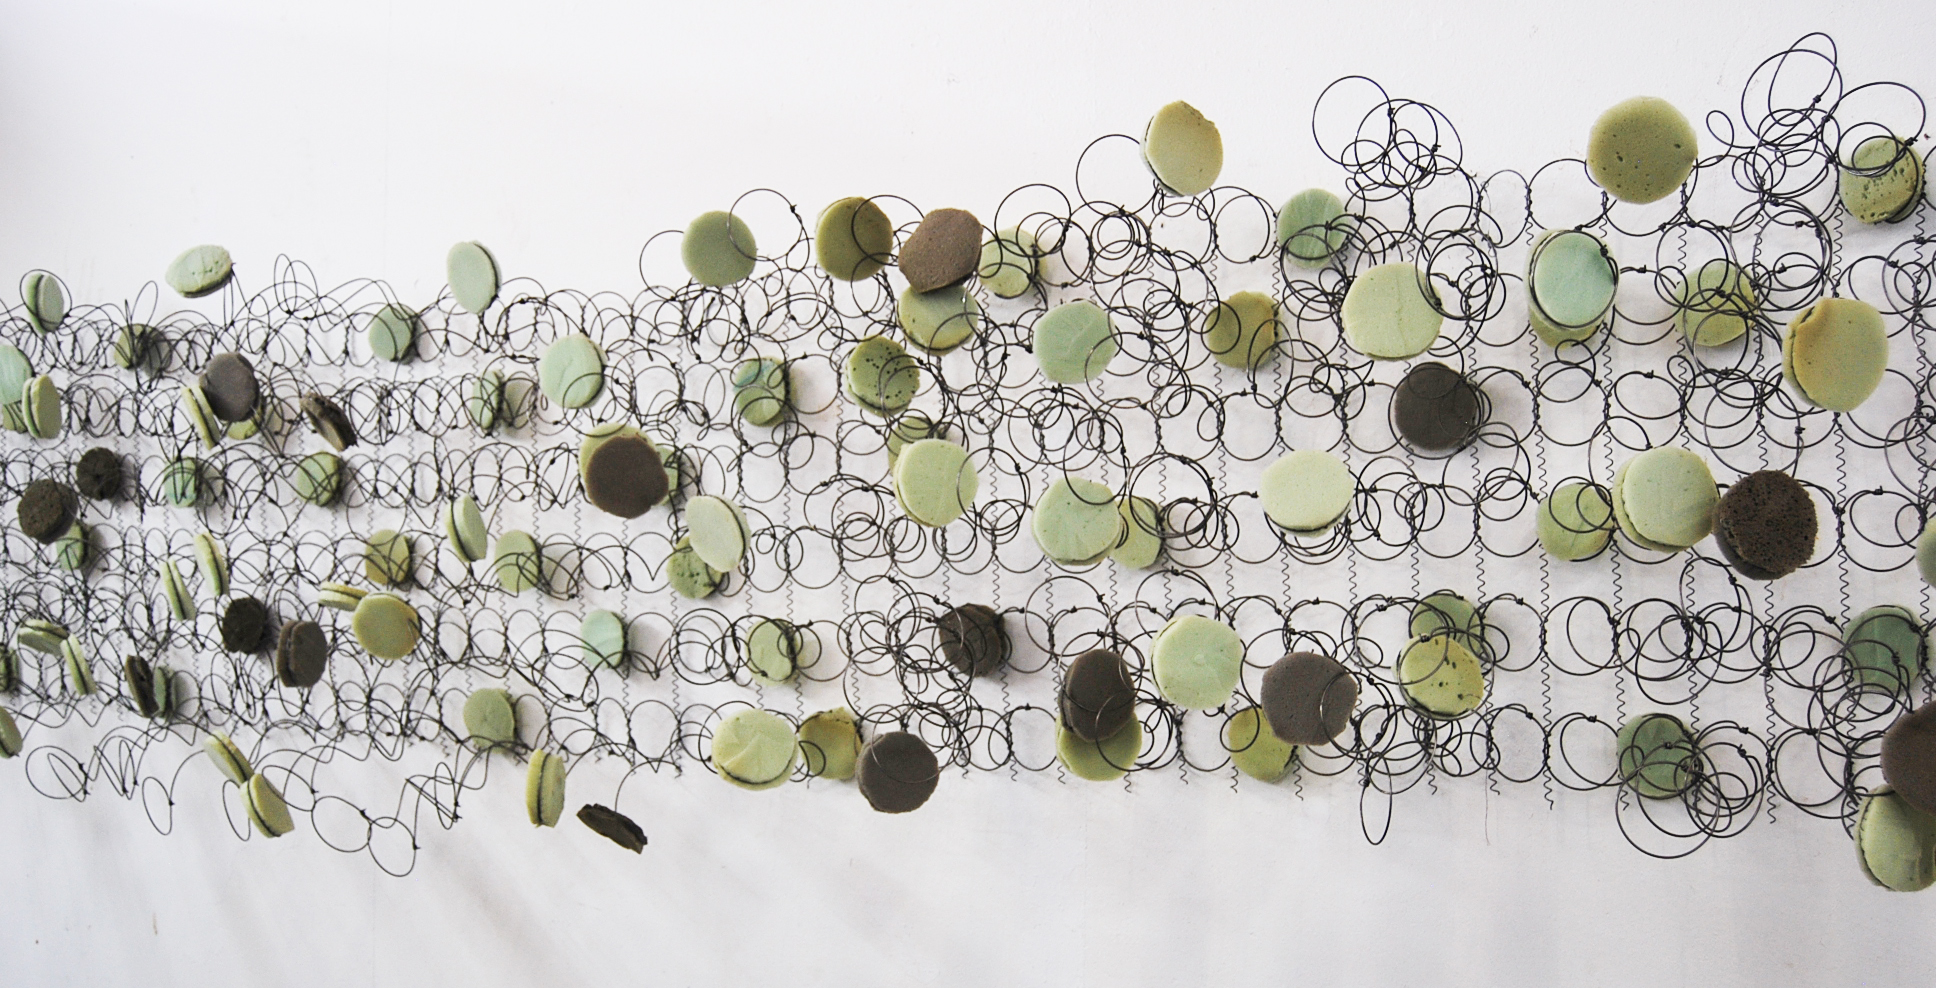 Bronwyn Katz, Orkaan Kwaatjie (2017), salvaged bed springs and mattress, 359,8 × 65,5 × 37,9cm, courtesy the artist and Blank Projects.jpg